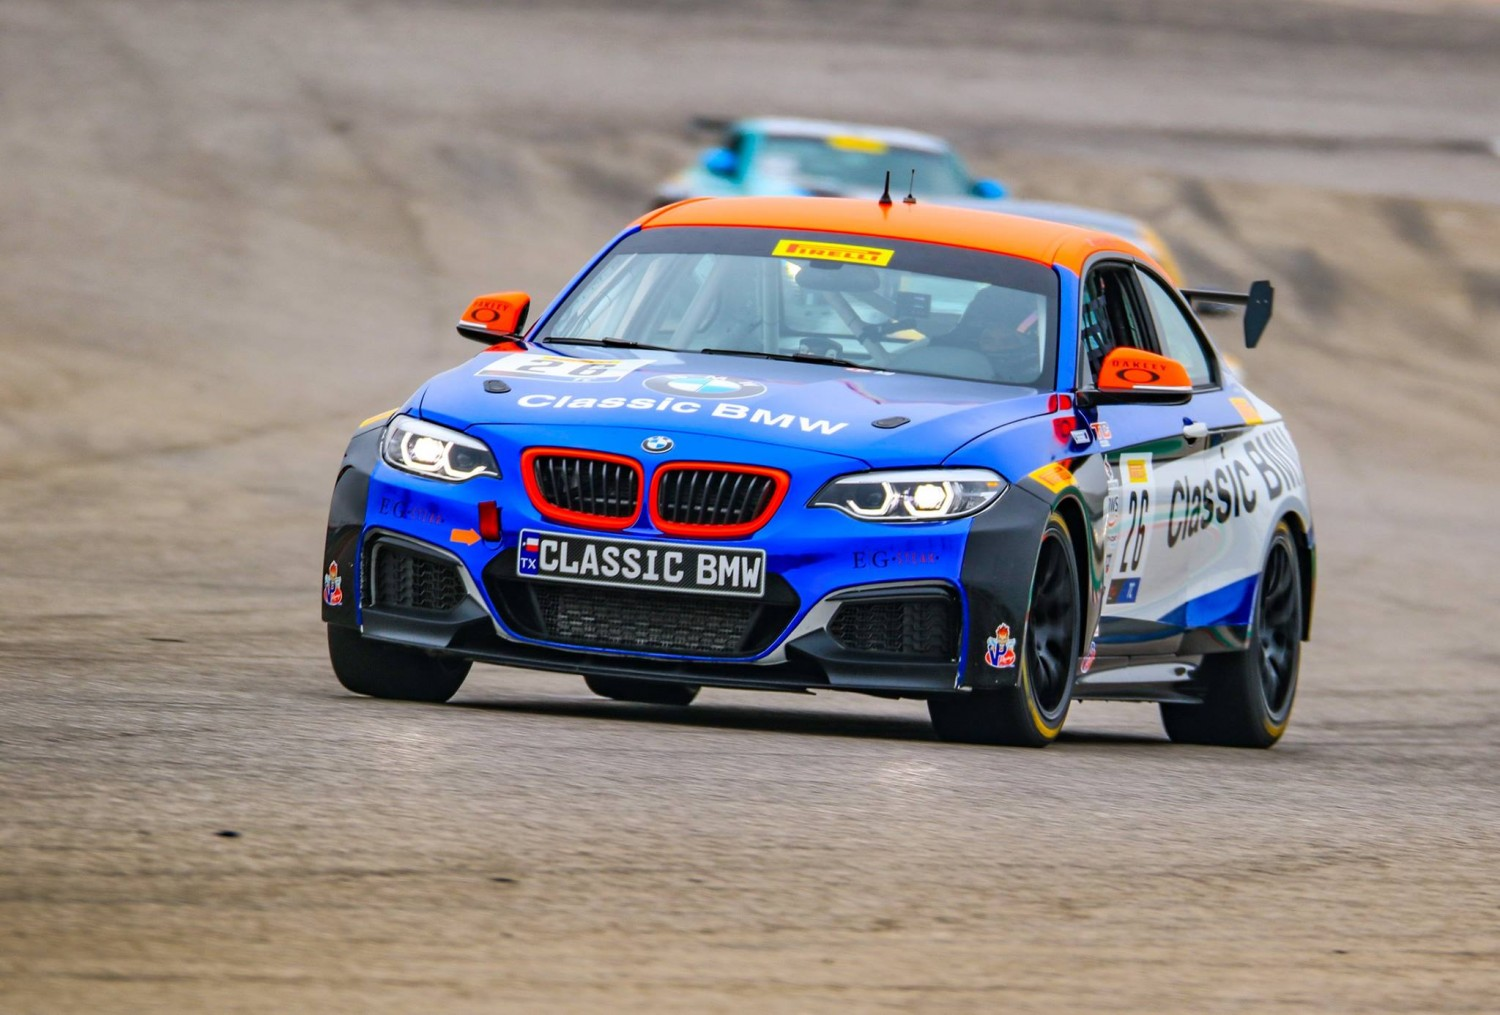 Fast Track Racing Fields 3 TC BMW M240iR Cup Sports Cars at COTA for SRO TC America Season Openers This Weekend